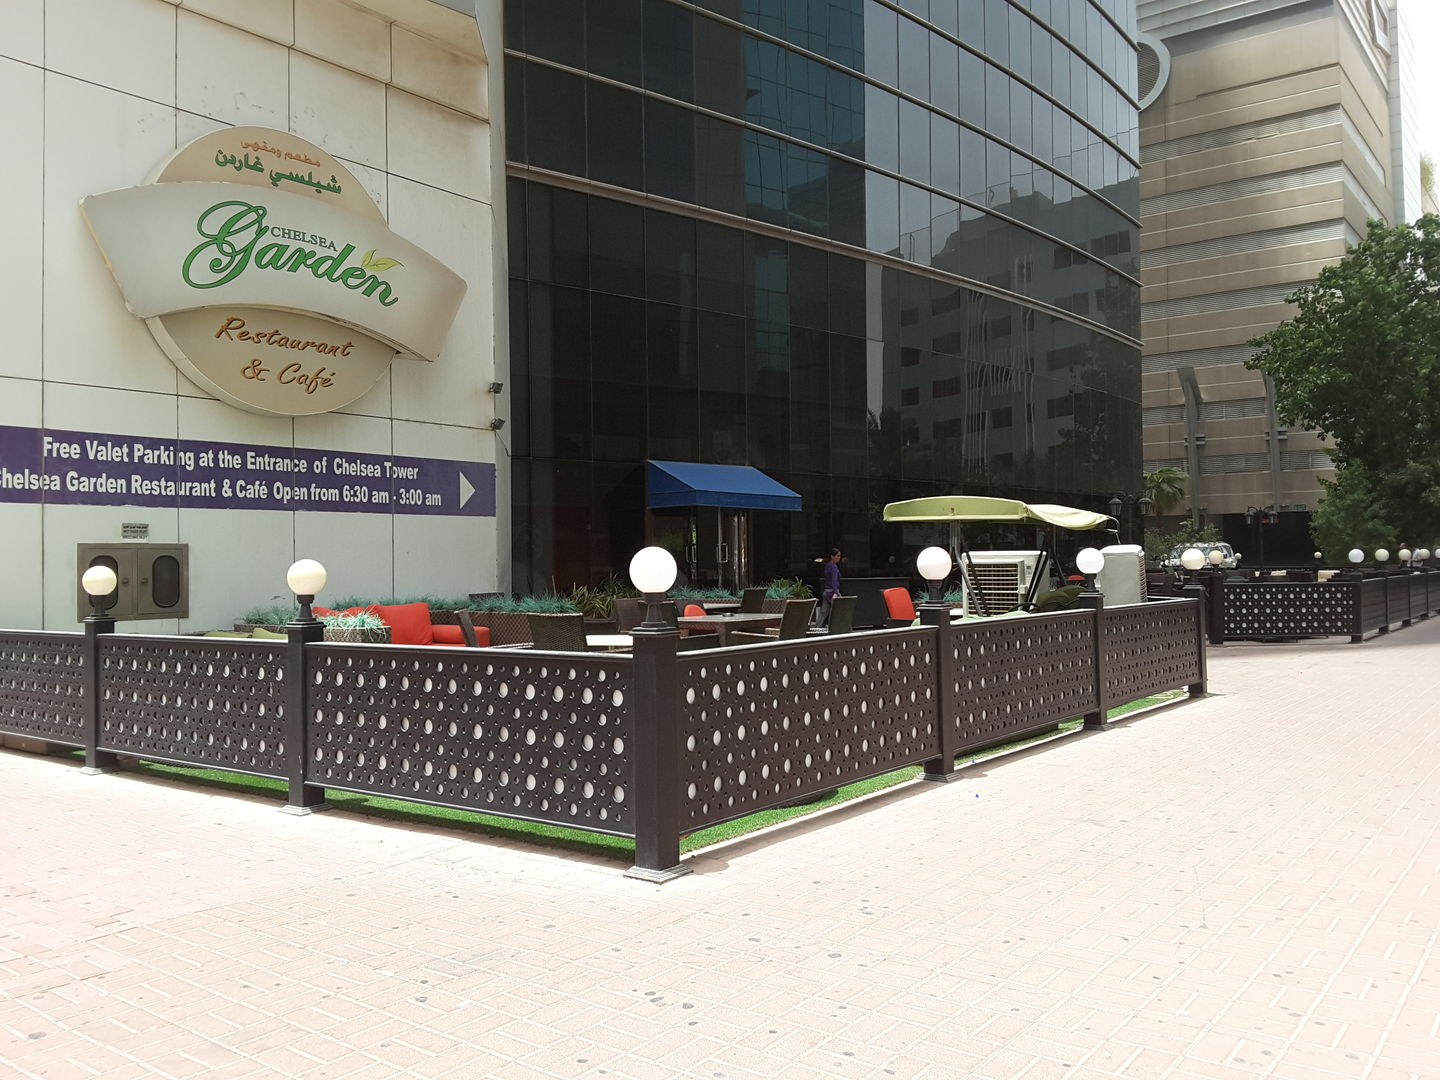 HiDubai-business-chelsea-garden-restaurant-cafe-food-beverage-restaurants-bars-sheikh-zayed-road-2-trade-centre-2-dubai-2